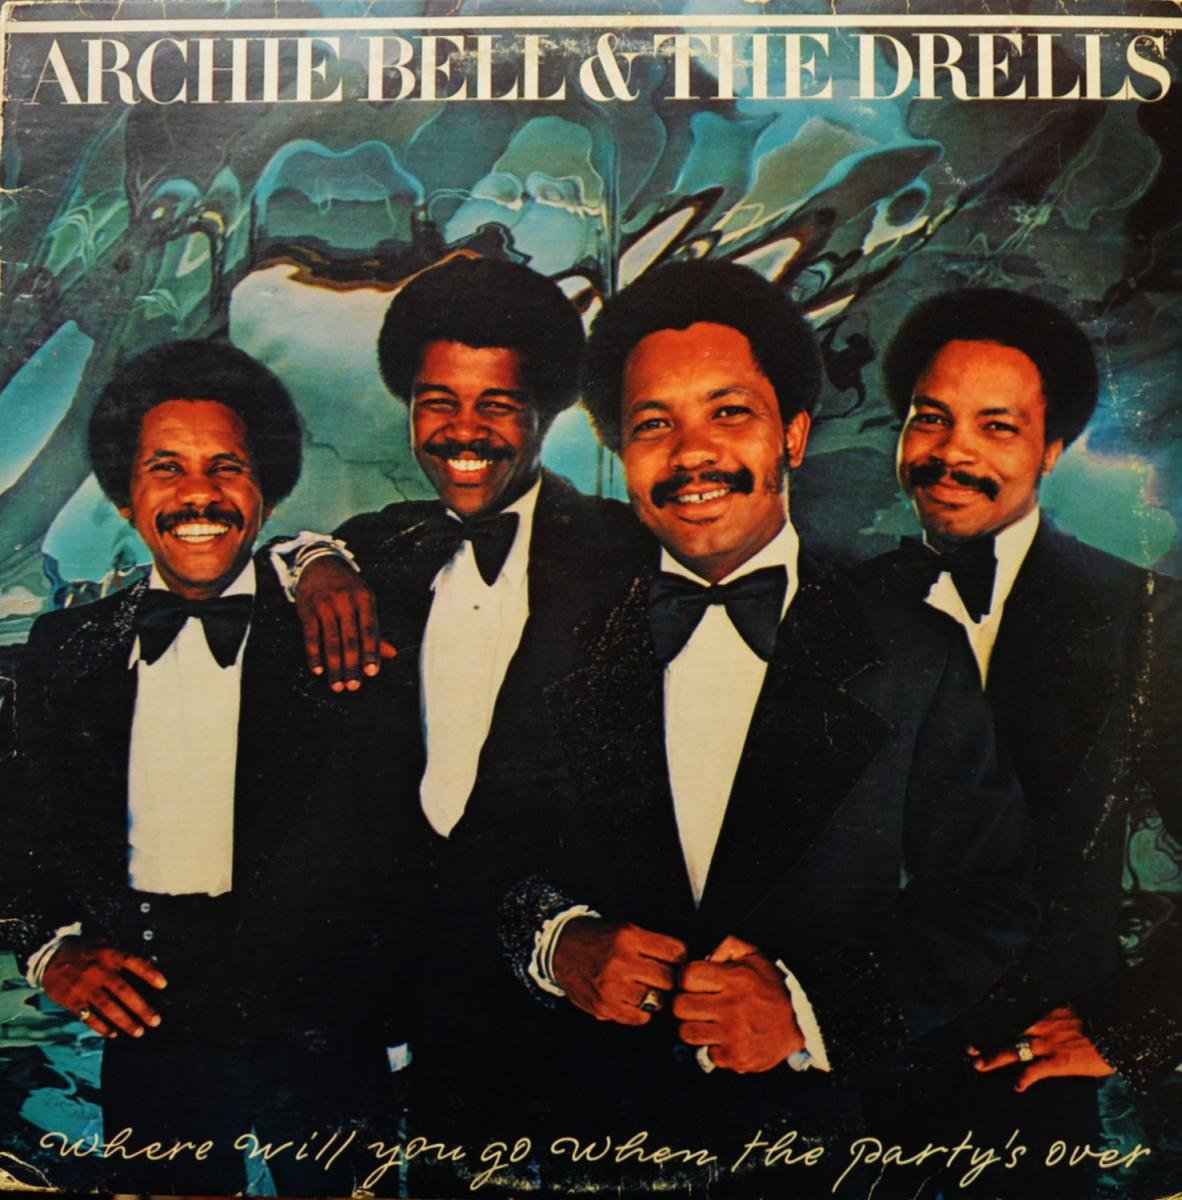 ARCHIE BELL & THE DRELLS / WHERE WILL YOU GO WHEN THE PARTY'S OVER (LP)